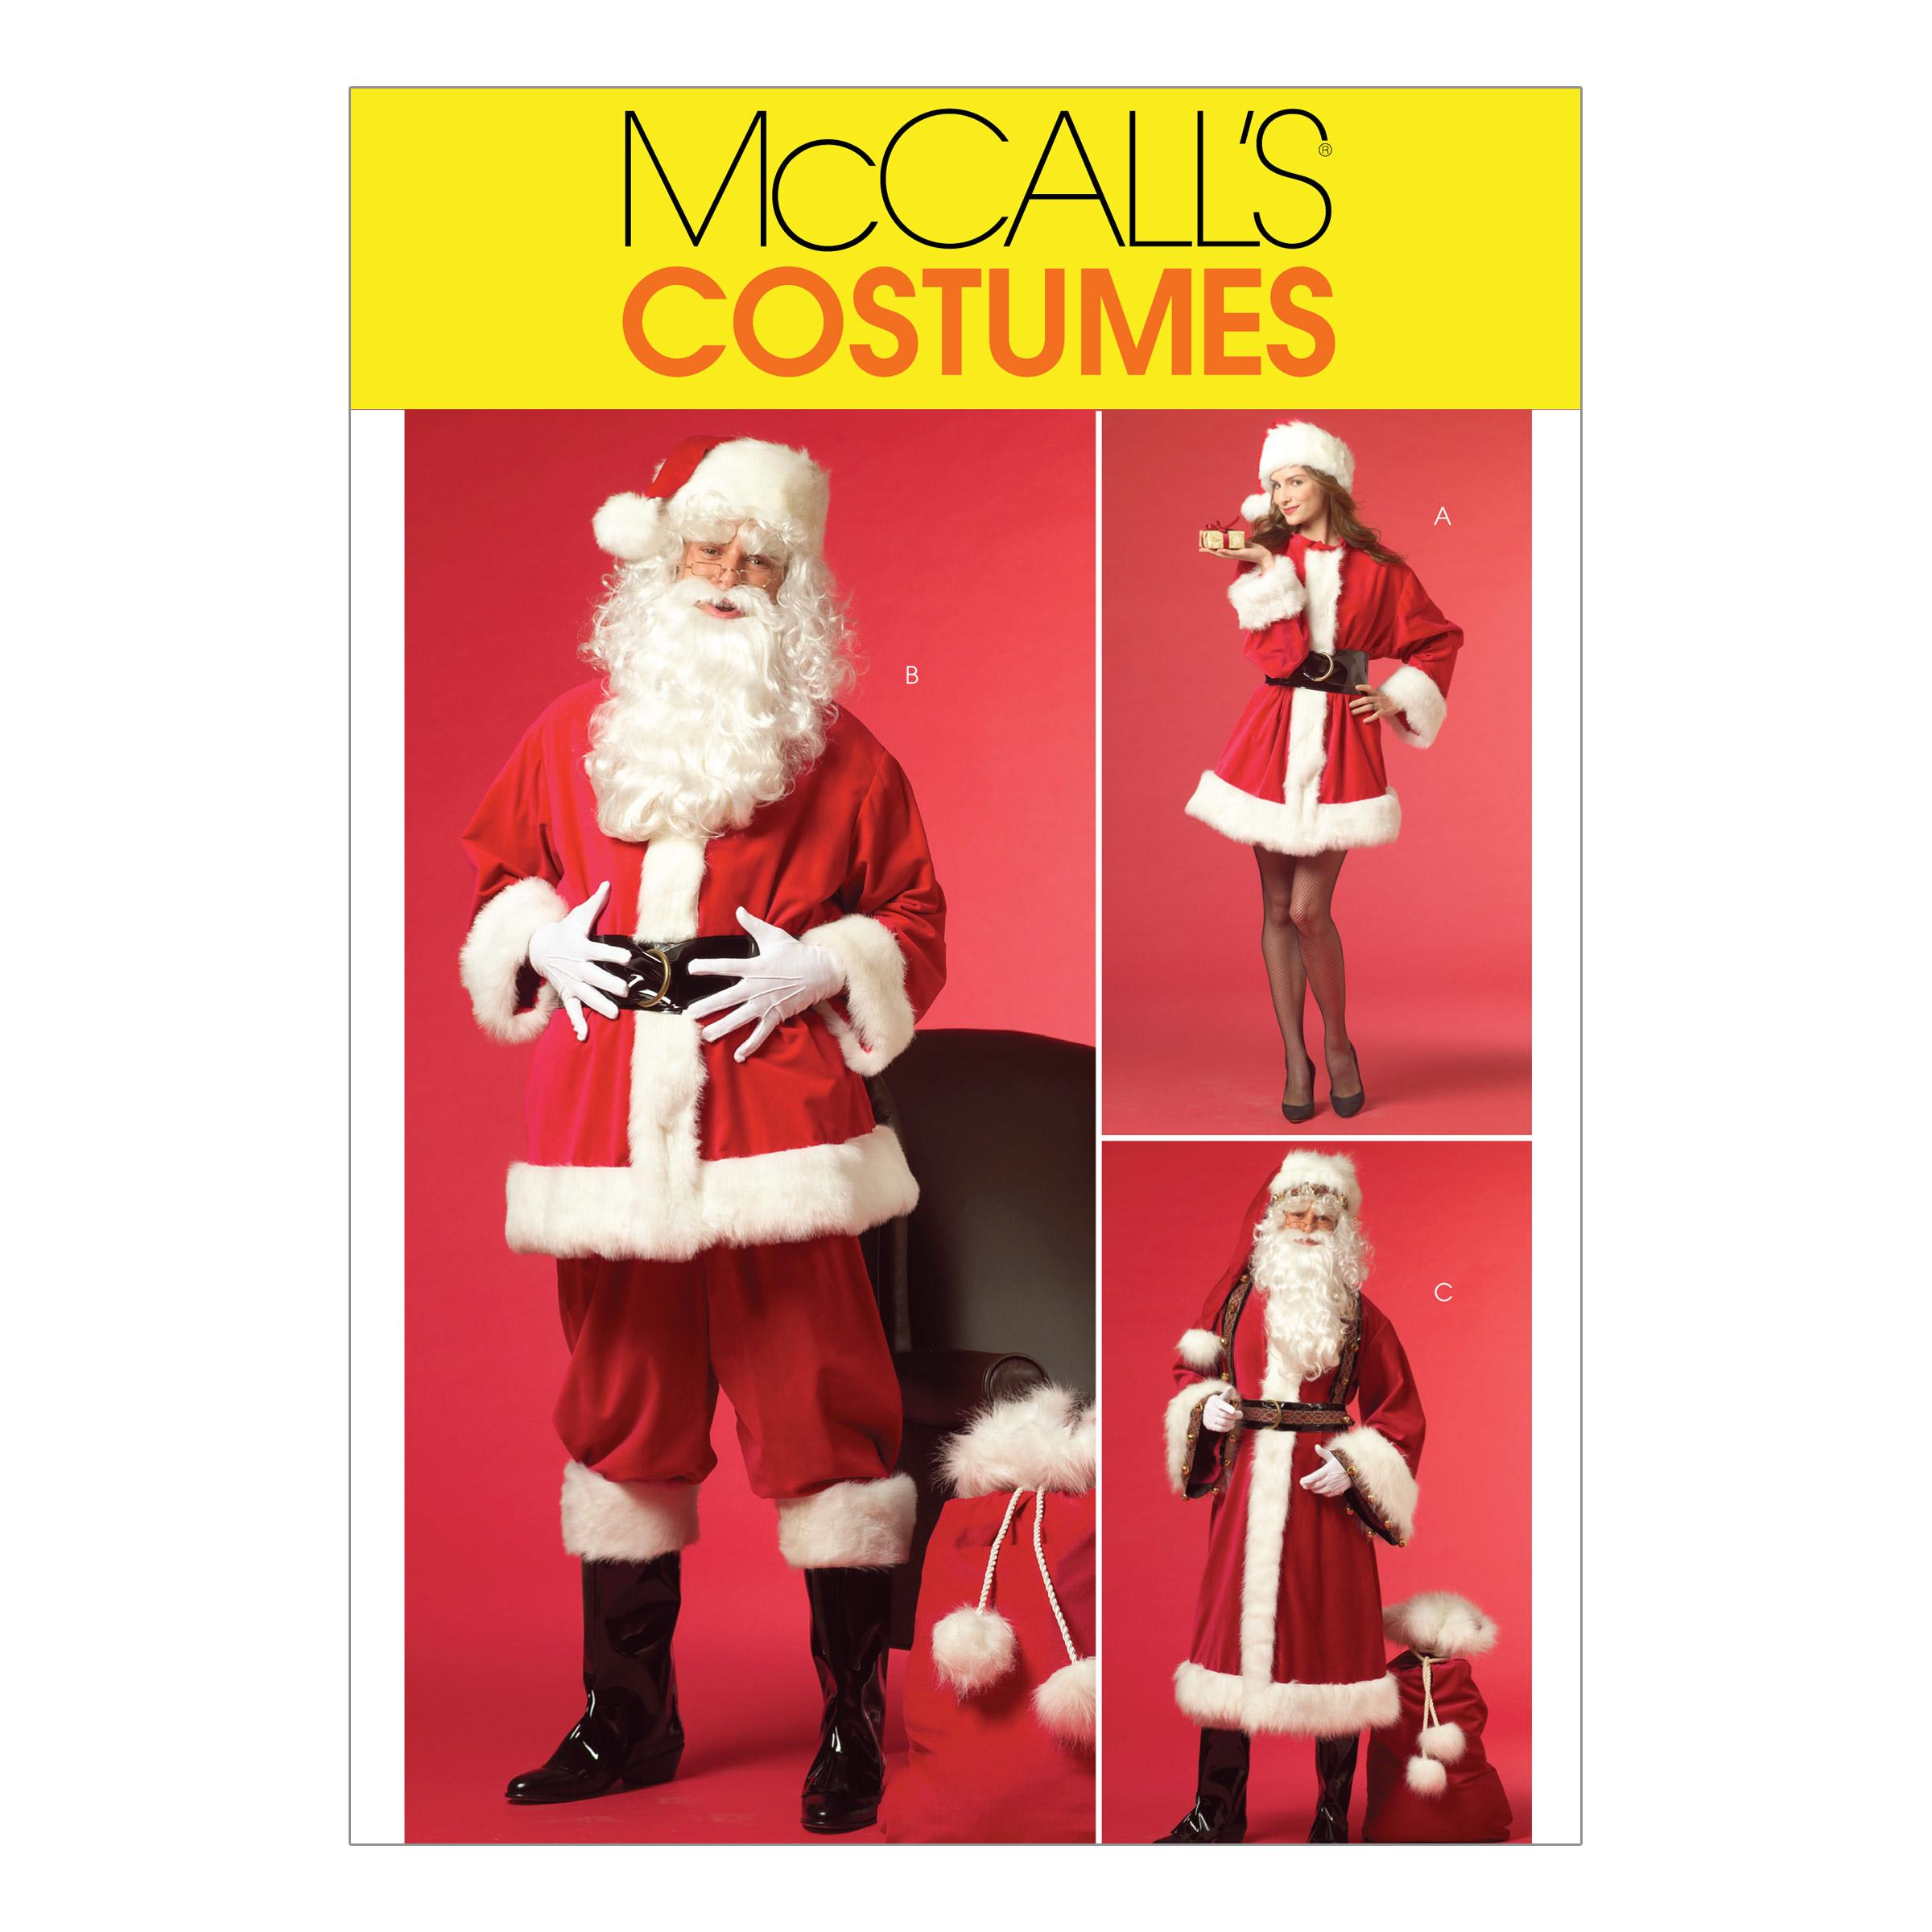 McCalls M5550 Costumes, Halloween, Seasonal/Holiday